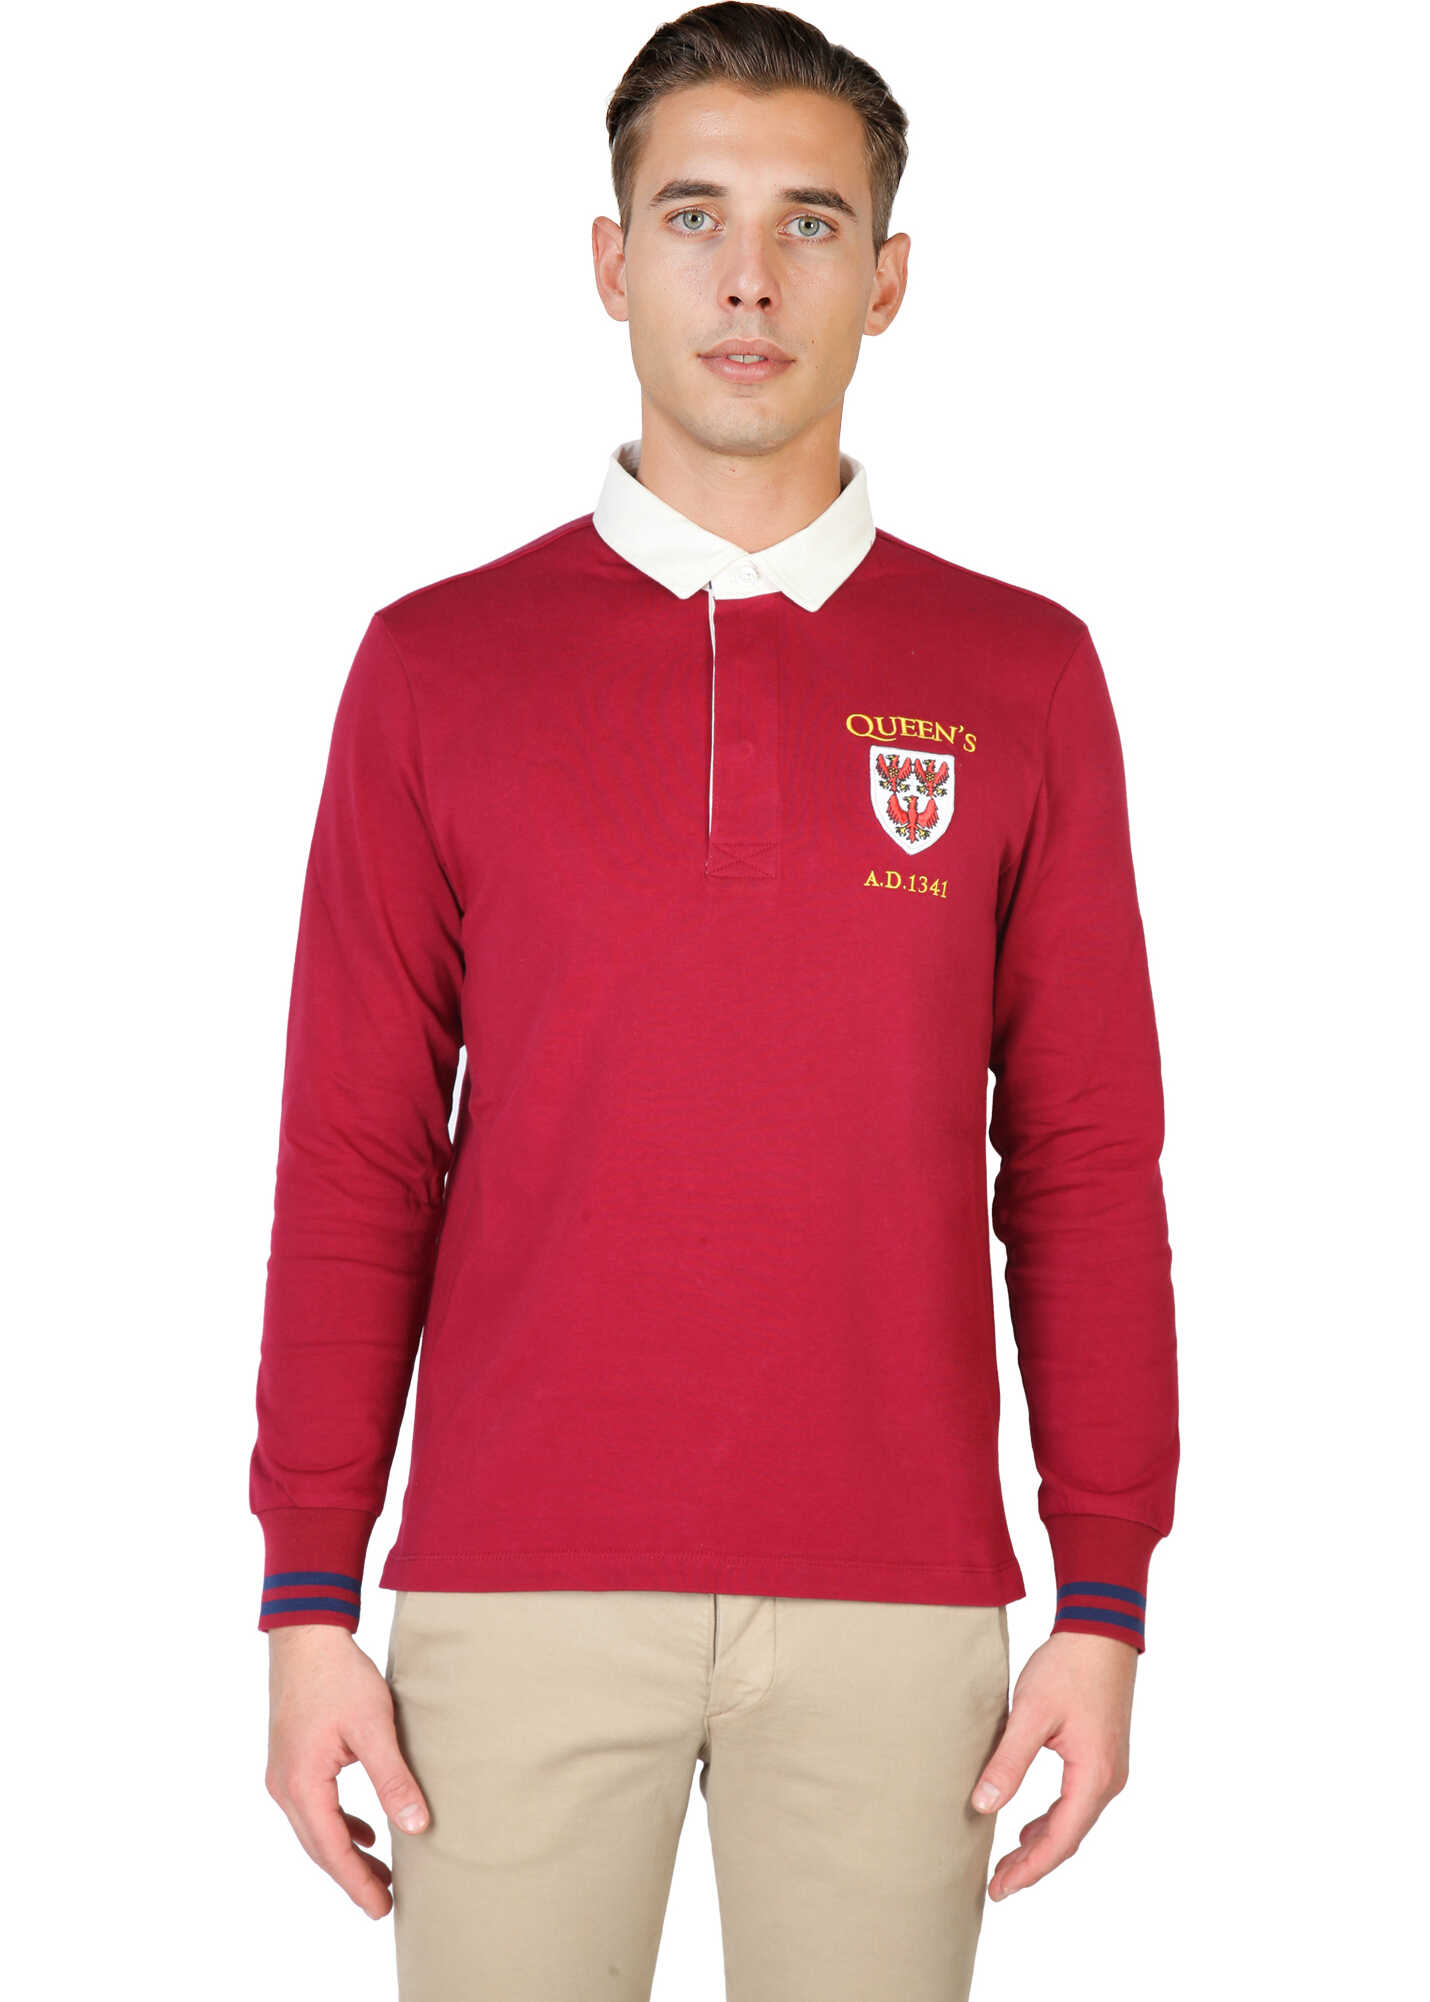 Oxford University Queens-Polo-Ml RED image0